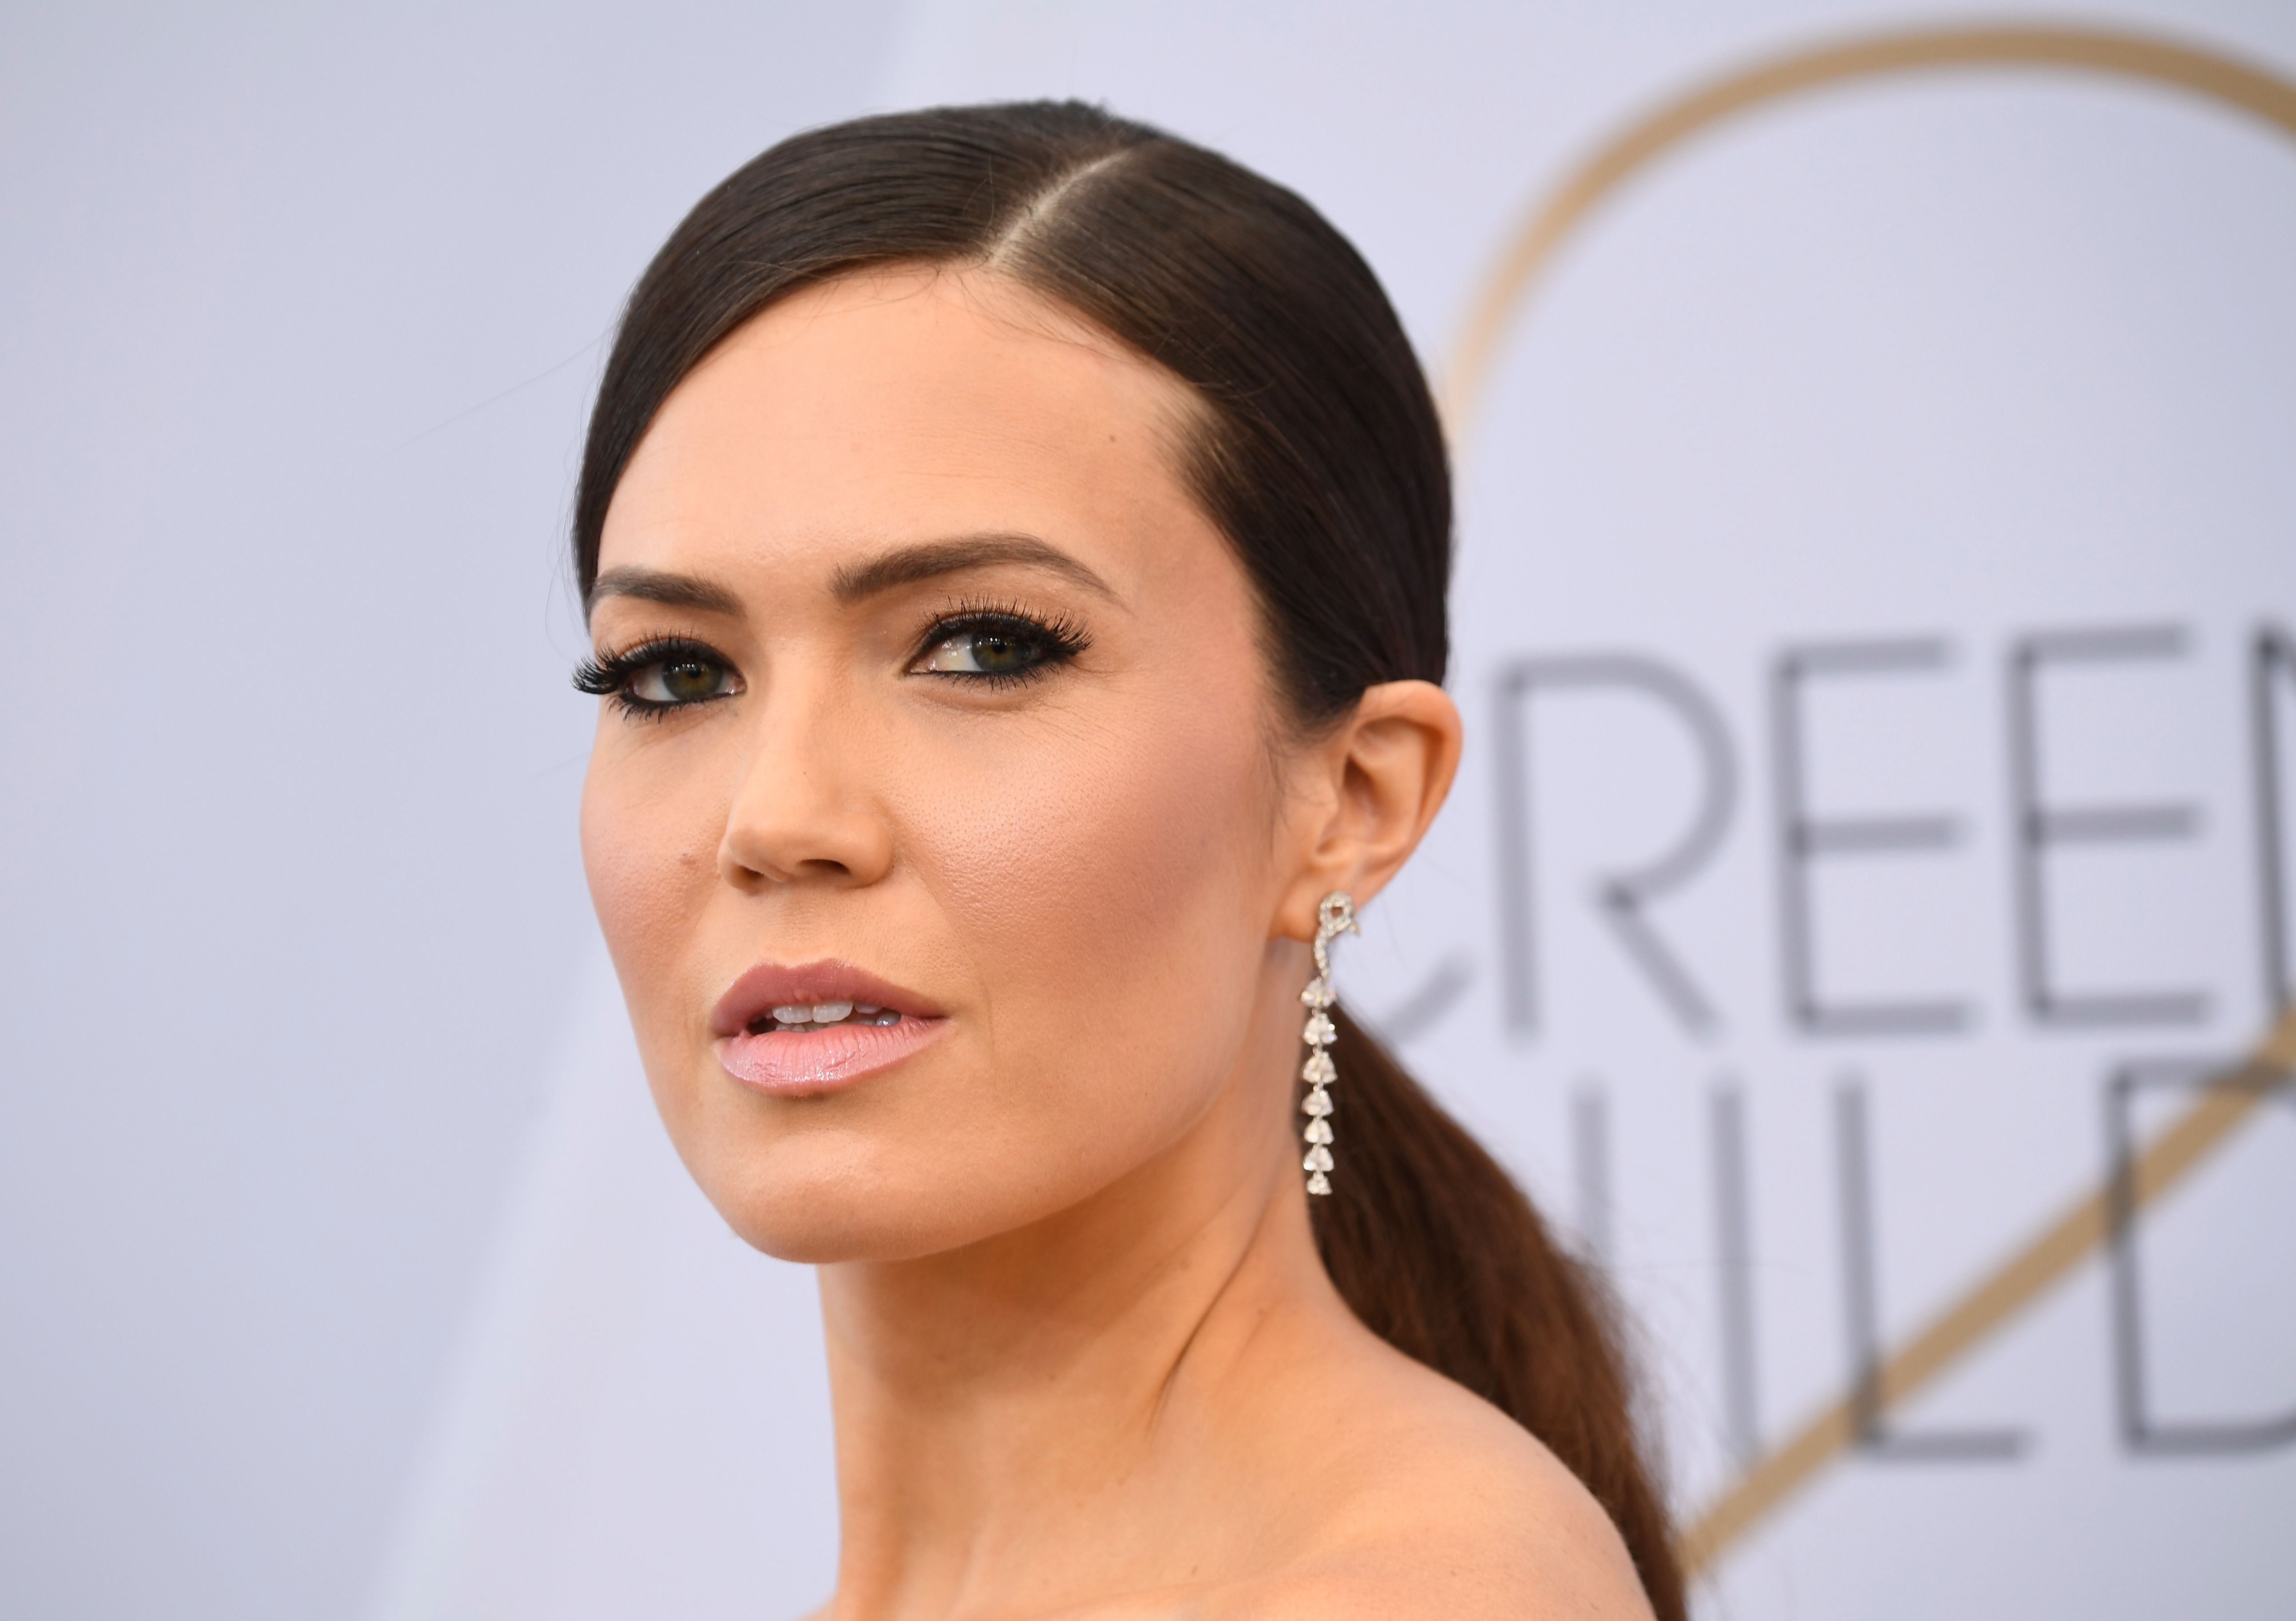 Mandy Moore atthe 25th Annual Screen ActorsGuild Awardson January 27, 2019, in Los Angeles, California   Photo:Frazer Harrison/Getty Images